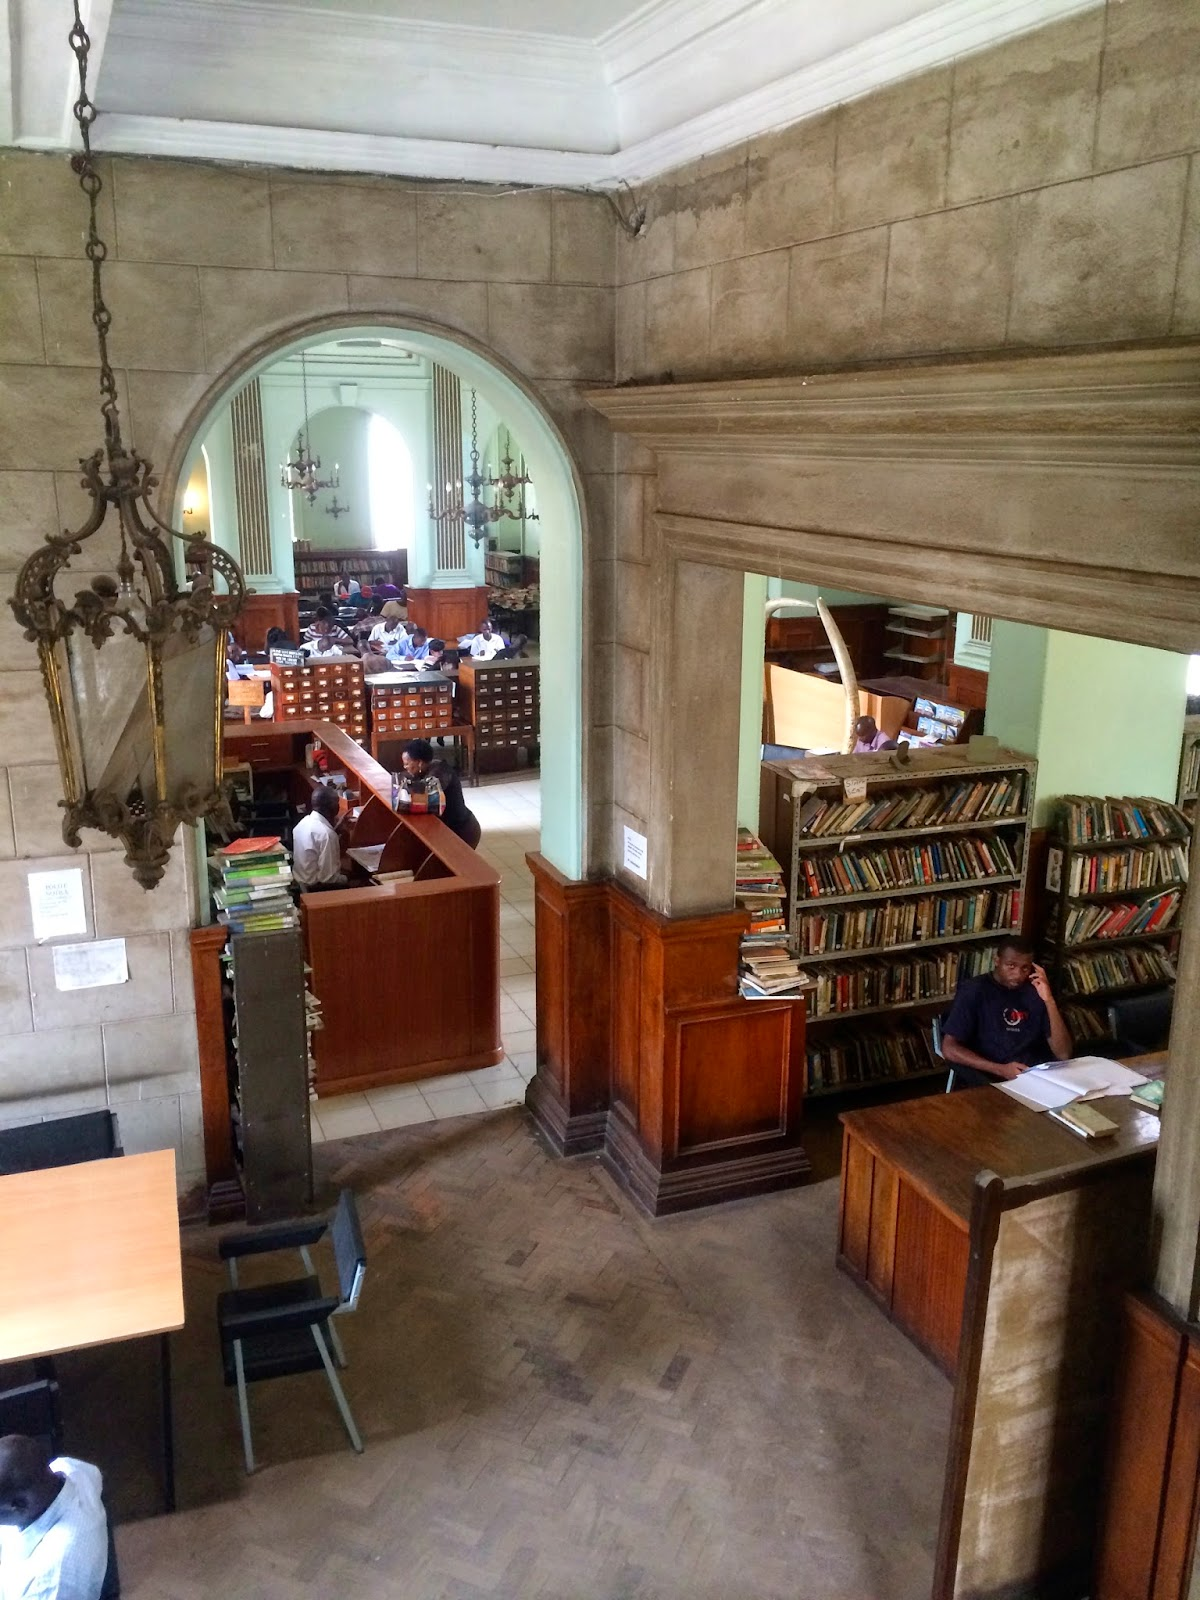 Public Library from colonial era. Source: http://charlotteccaldwell.blogspot.co.ke/2014/04/mcmillan-library.html